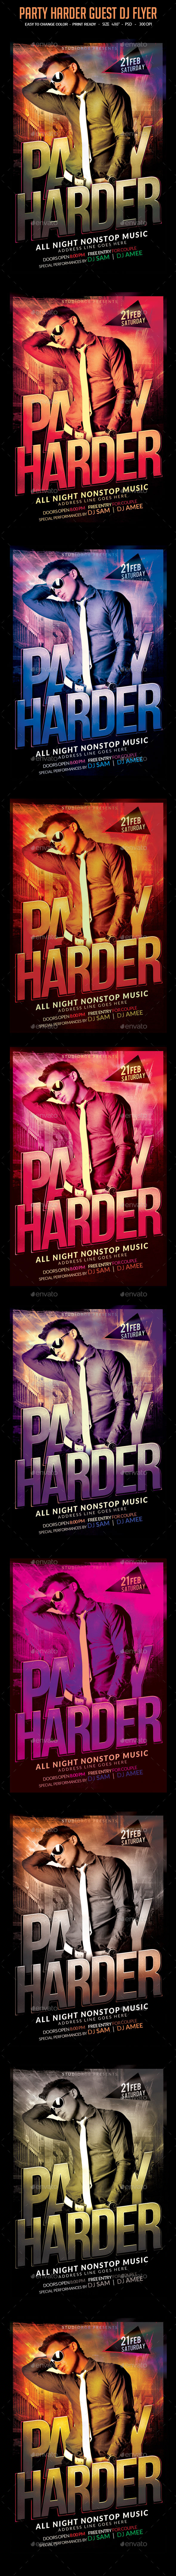 Party Harder Guest Dj Flyer - Clubs & Parties Events